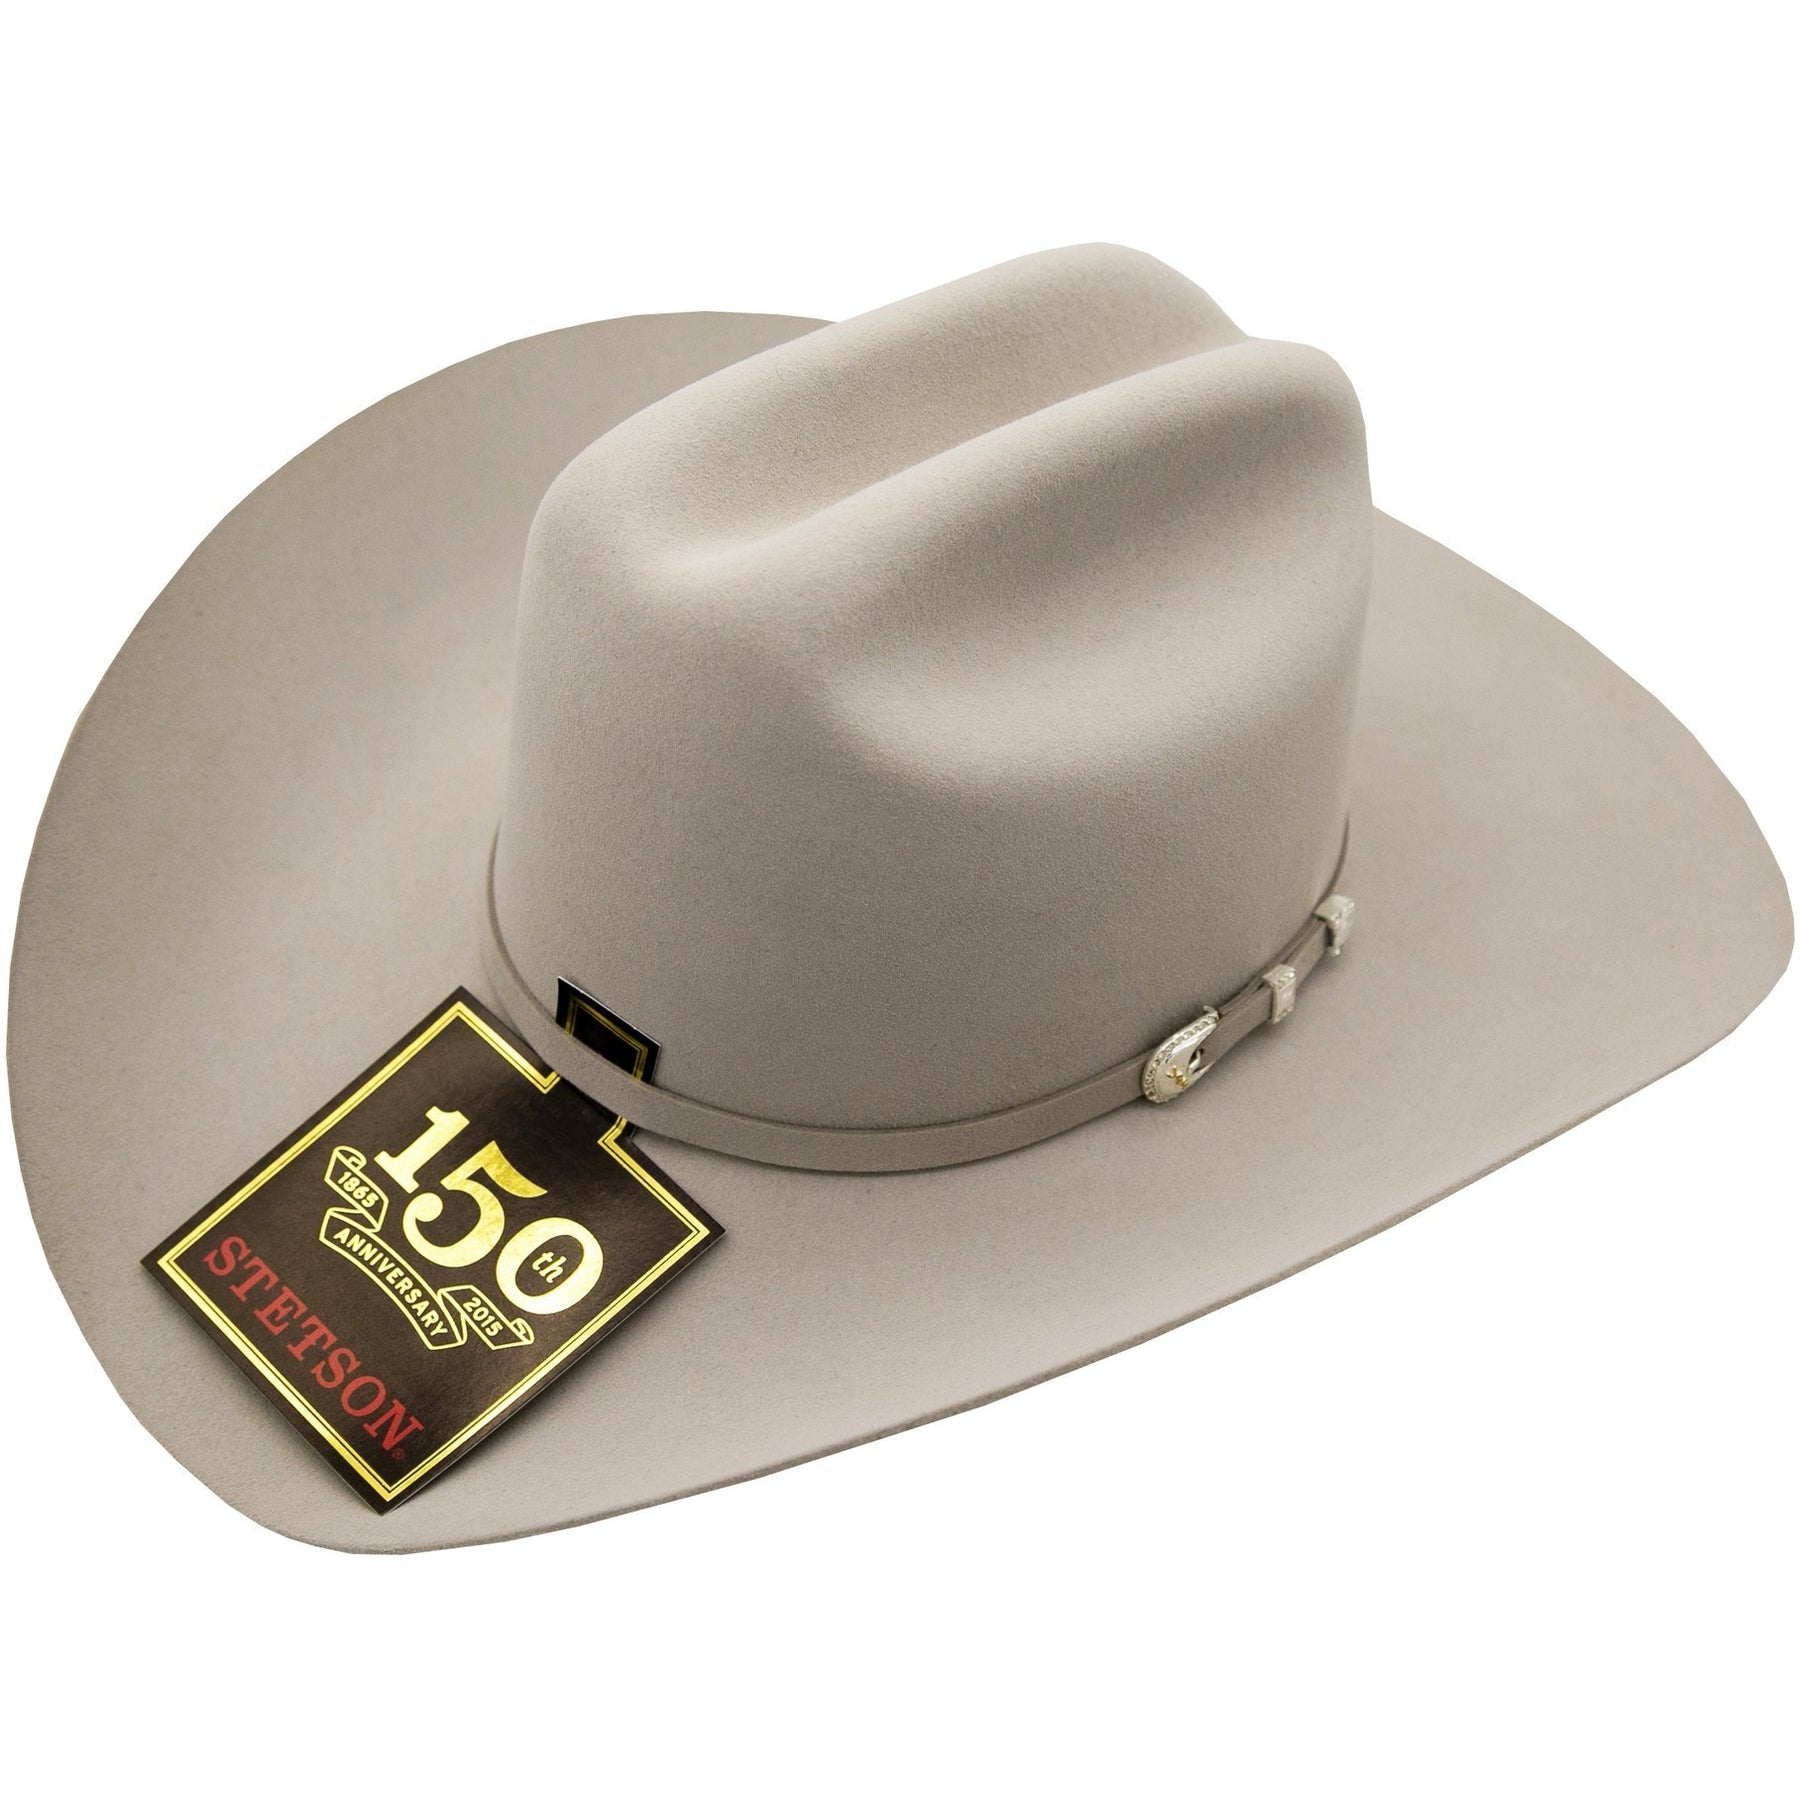 2e4f5503024 10x Stetson Shasta Felt Hat Mist Gray Handmade In The USA Stetson ...